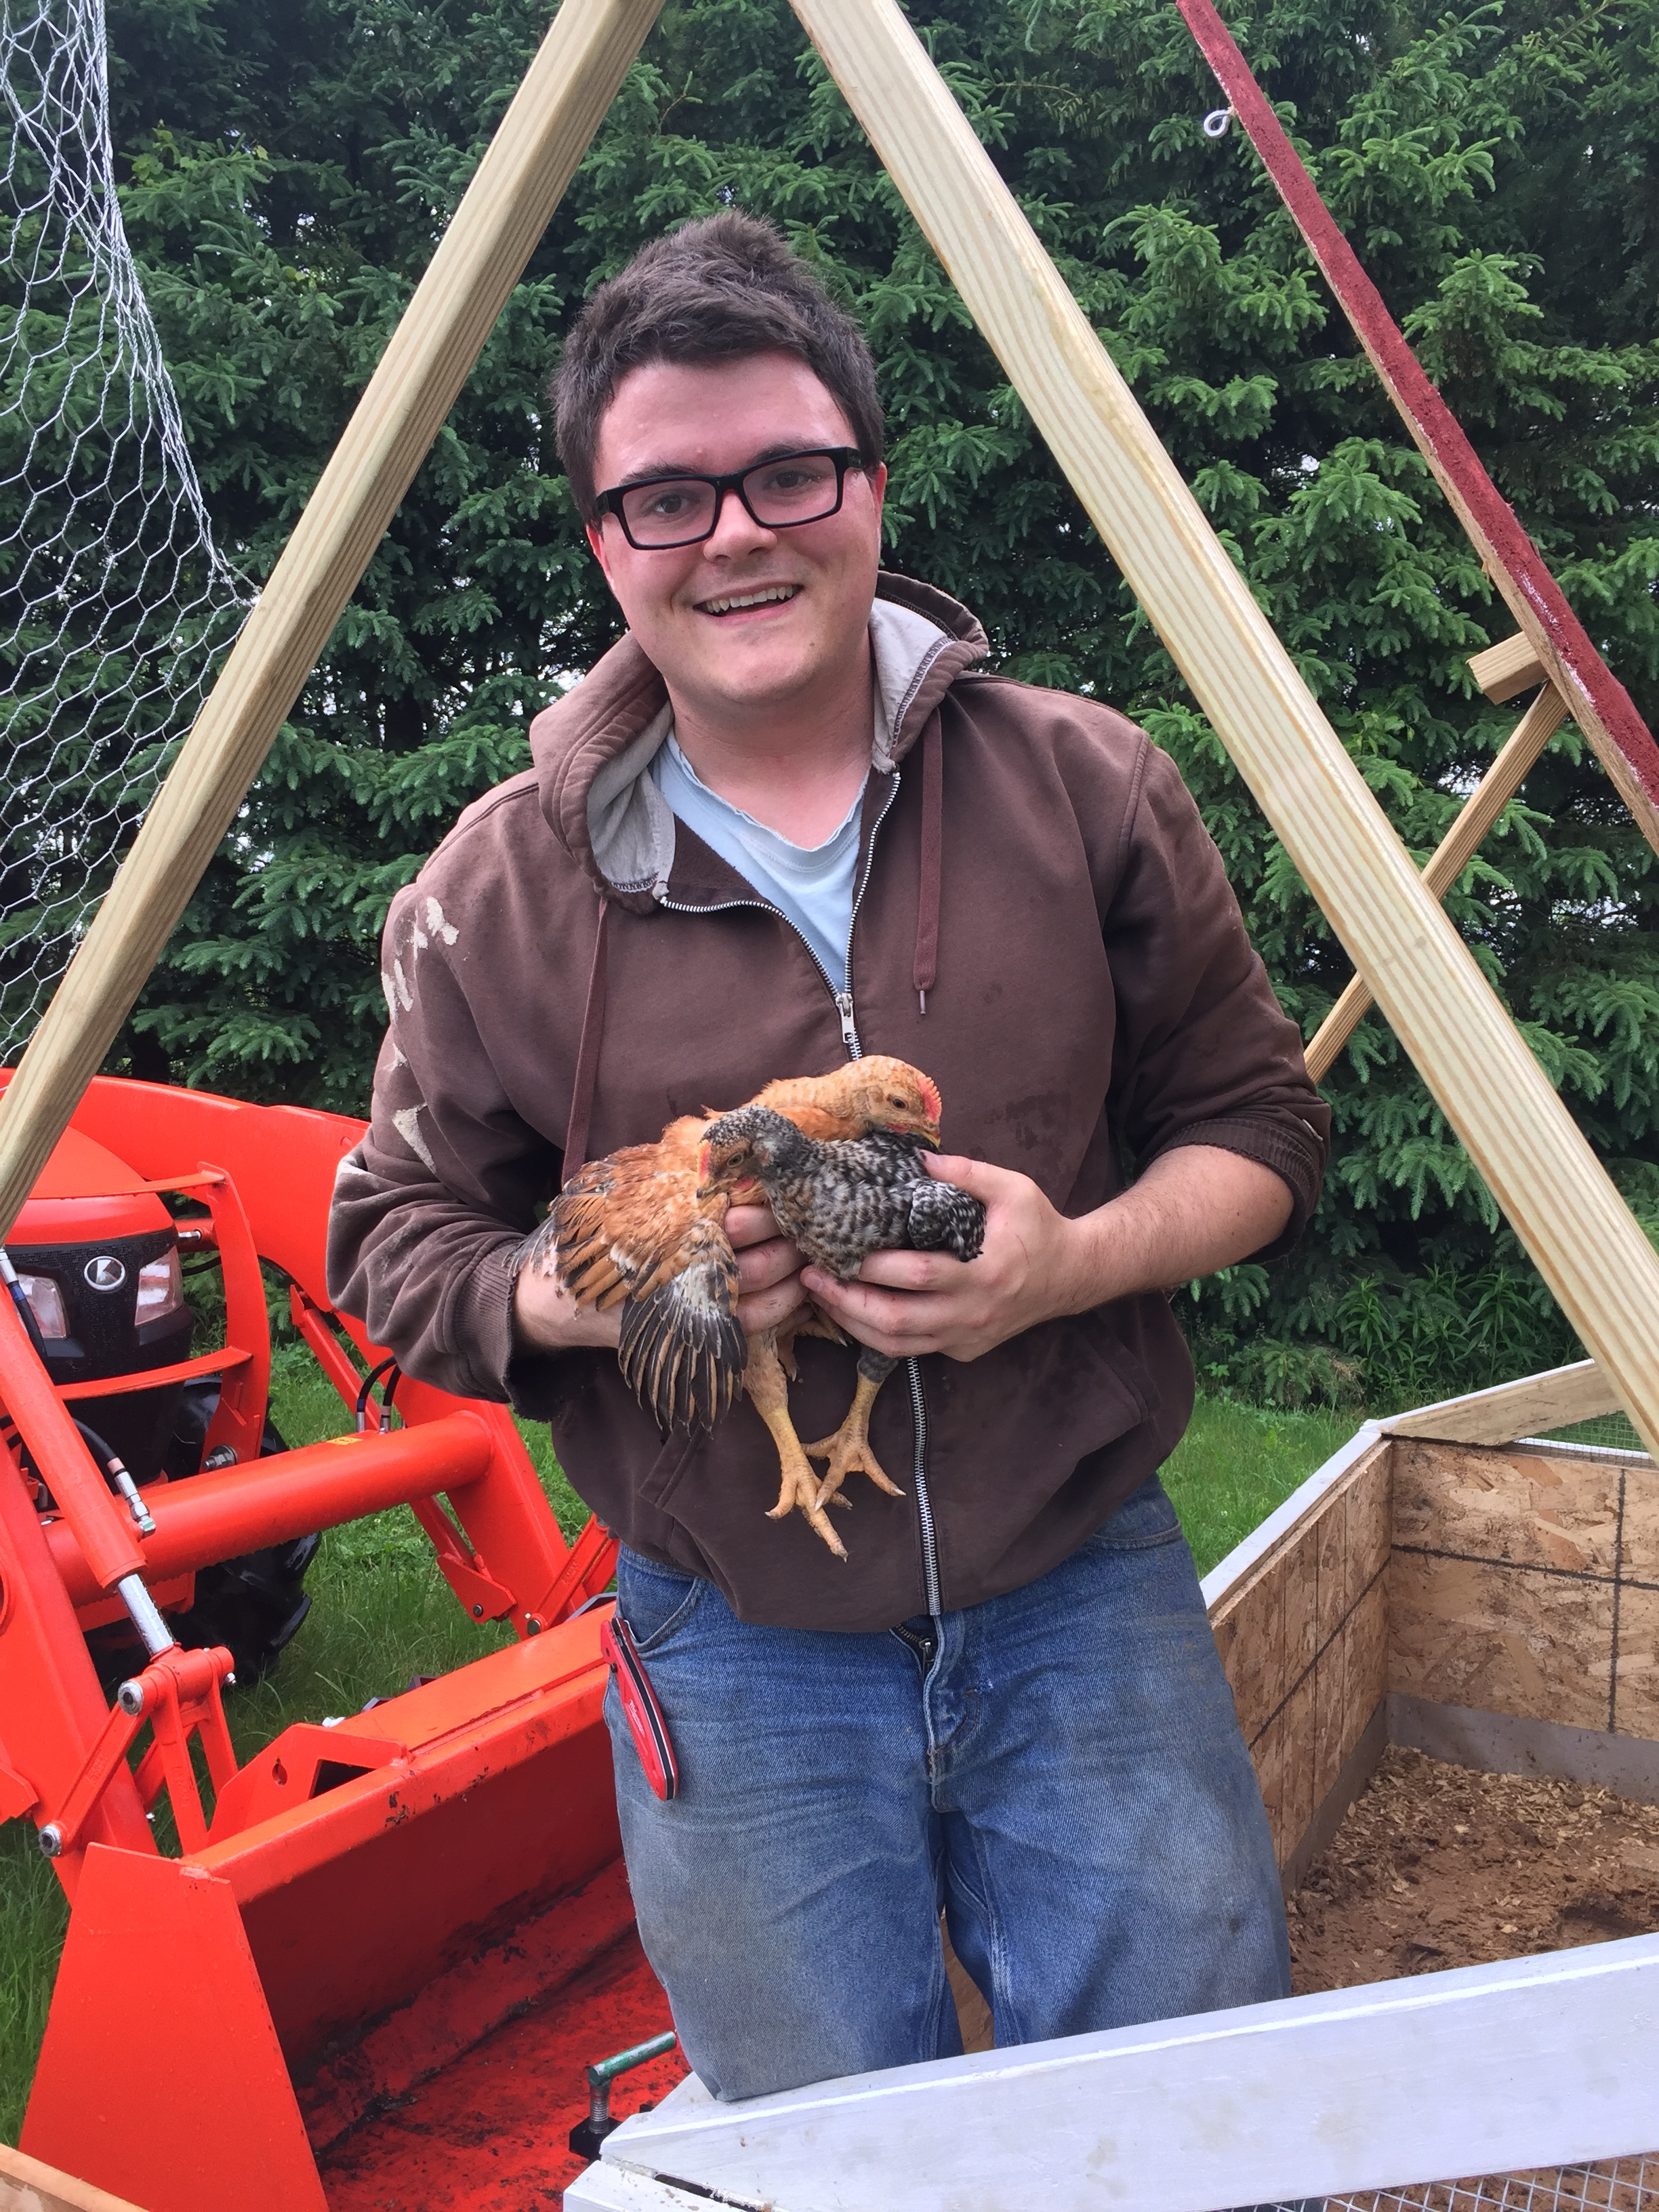 small folk farm chickens - We are thrilled to be partnering with Dave at all of our 2019 drop sites to offer his beautiful fresh birds to the Madison, Evansville, Stoughton and Belleville area on a monthly basis (with deliveries in June, July, August and September).Please note that these birds are NOT certified organic and we are therefore not able to sell them directly through our own website or our CSA. Your purchase of a chicken CSA will be independent of our farm. Your order will be managed by Farmer Dave and coordinated using Raleigh's Hillside Farm drop sites